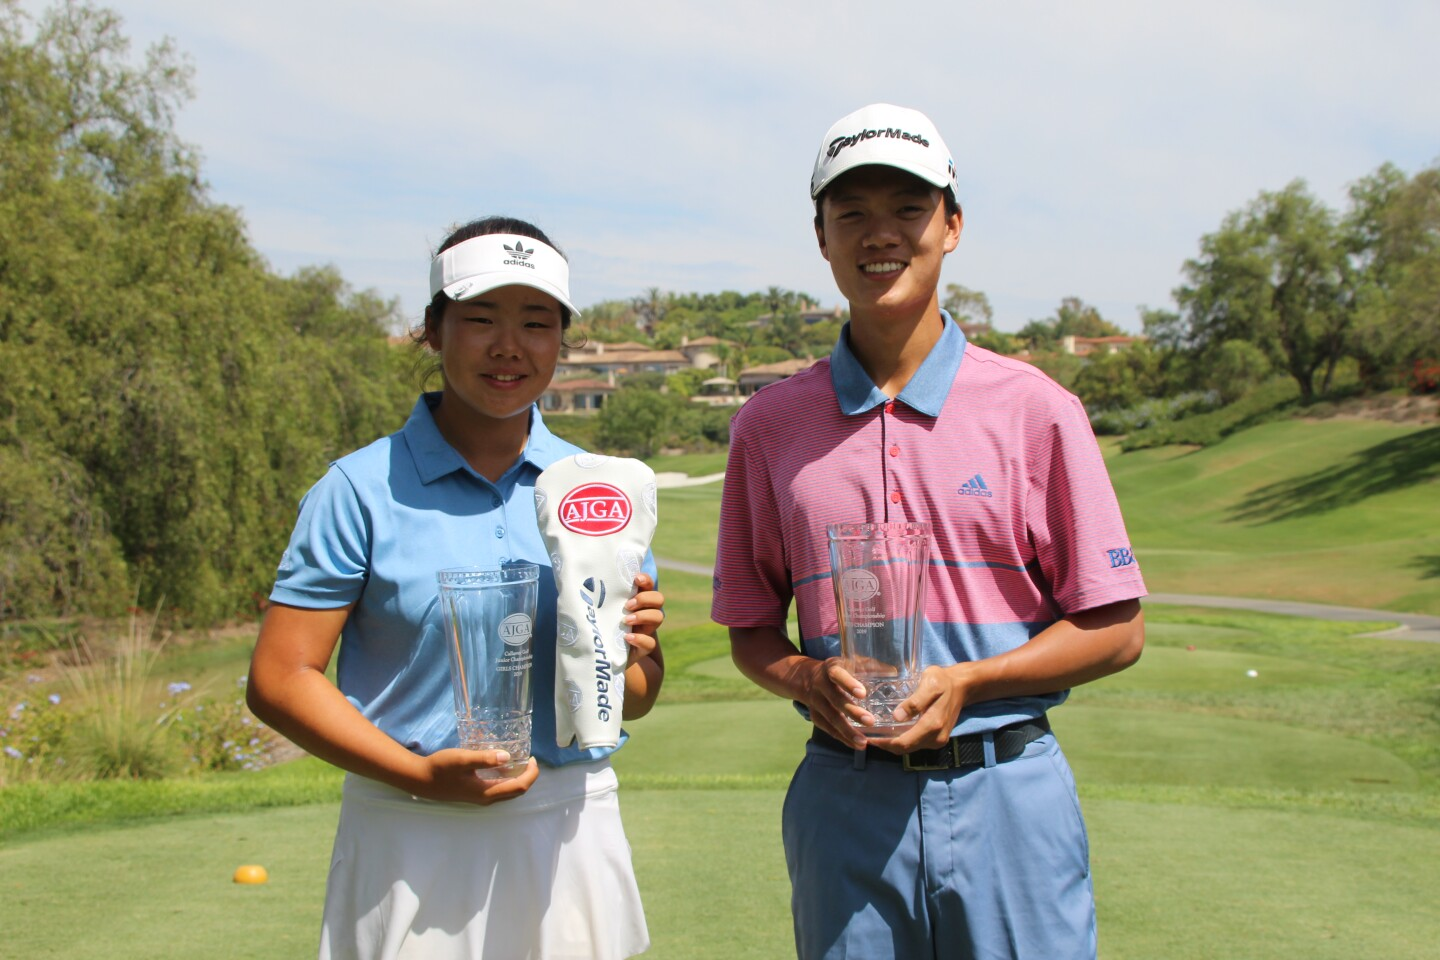 Ashley Yun and Brian Ma - Champions - 2019 - Callaway Golf Junior Championship.JPG